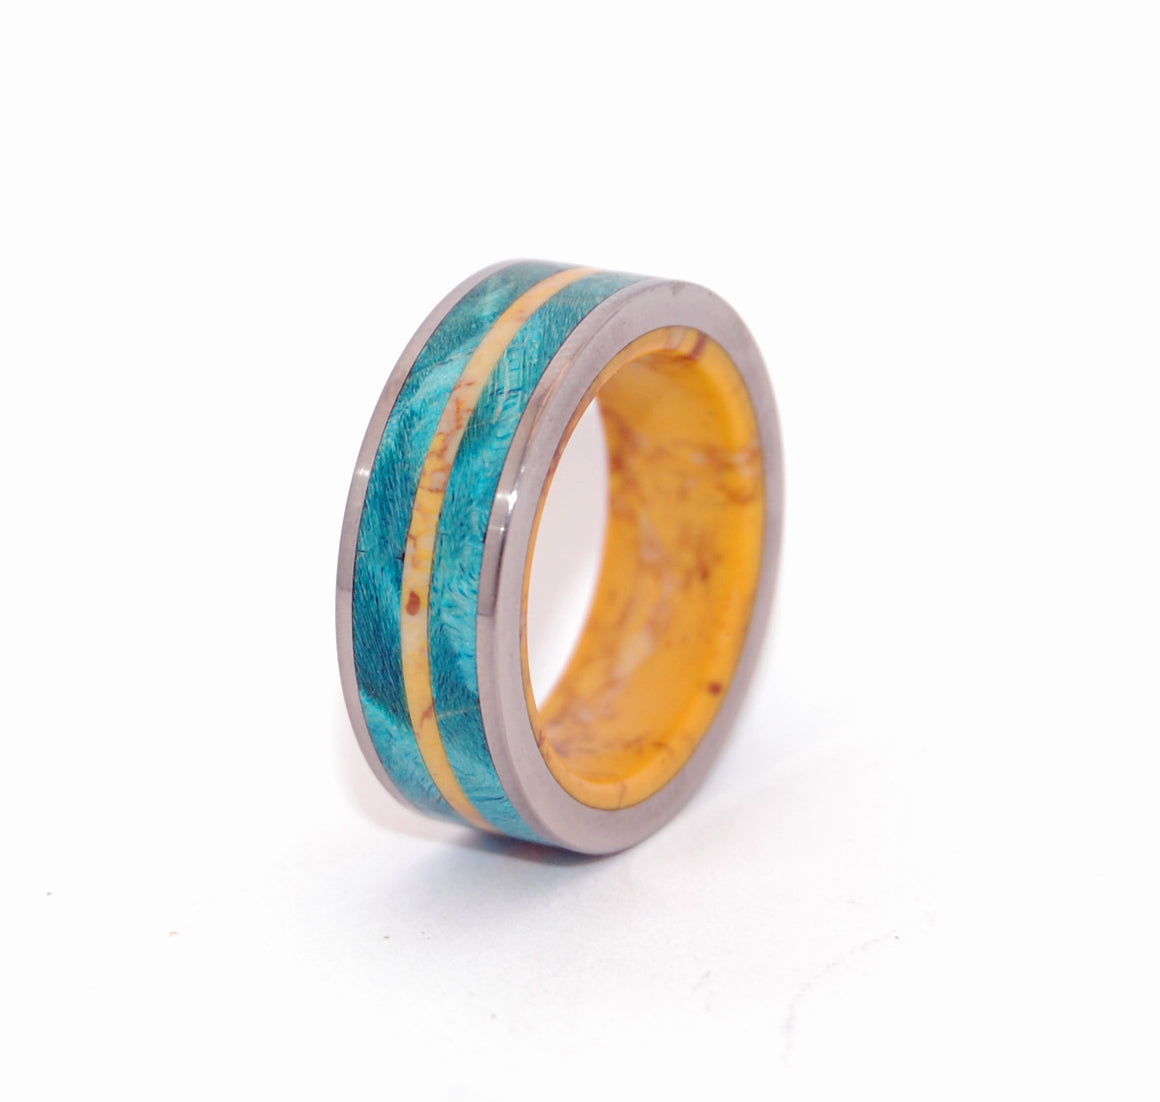 Tornado of Desire and Sunshine | Handcrafted Wooden Wedding Rings